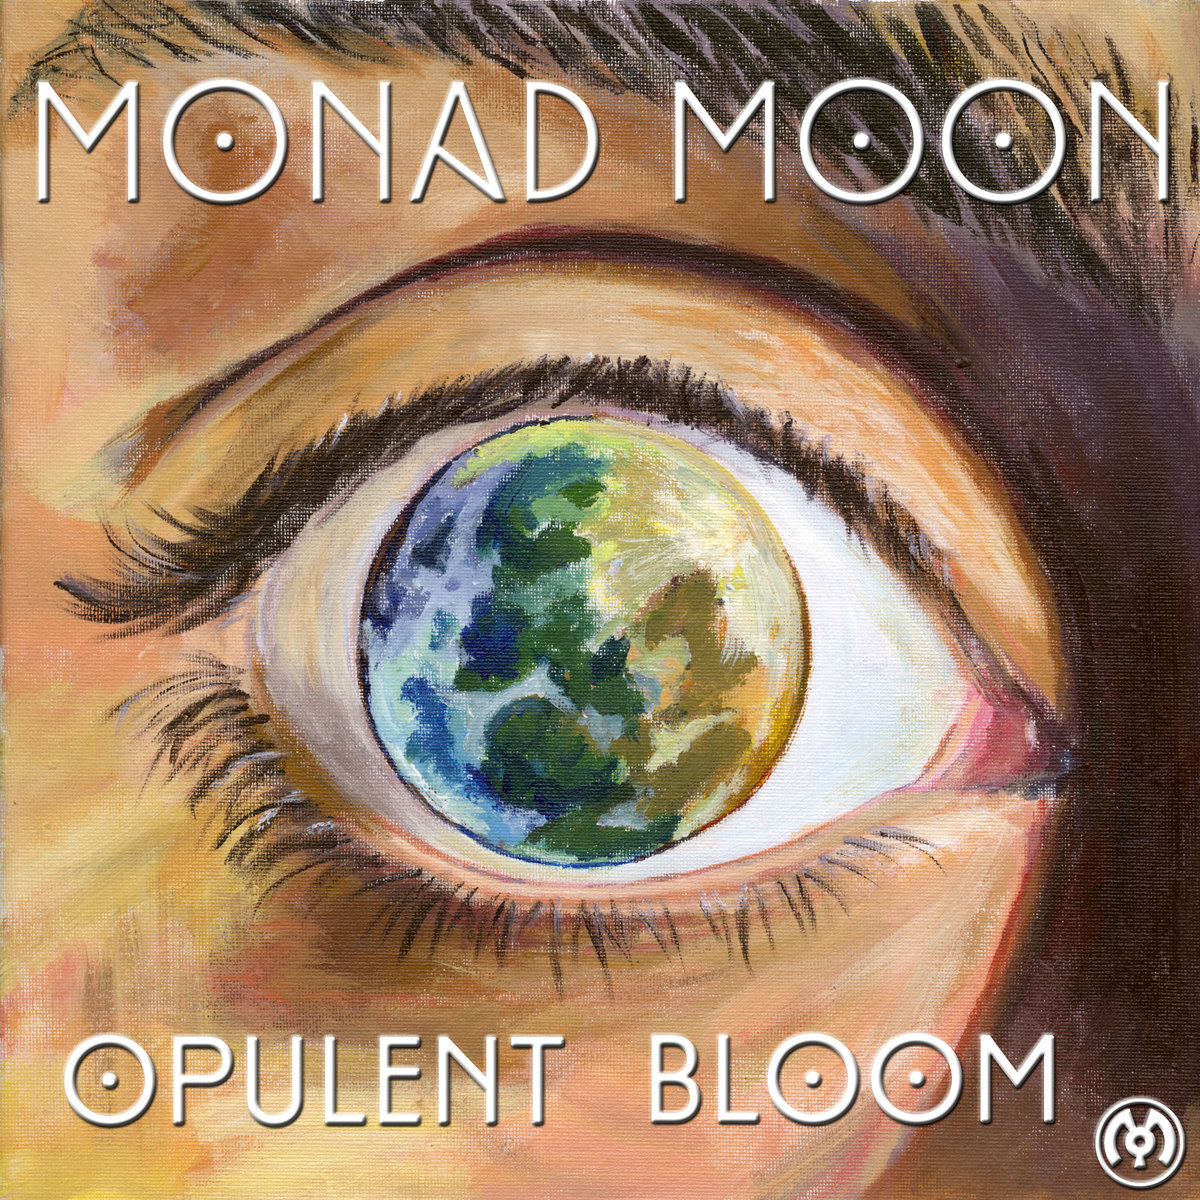 Monad Moon - Zoetic @ 'Opulent Bloom' album (electronic, dubstep)